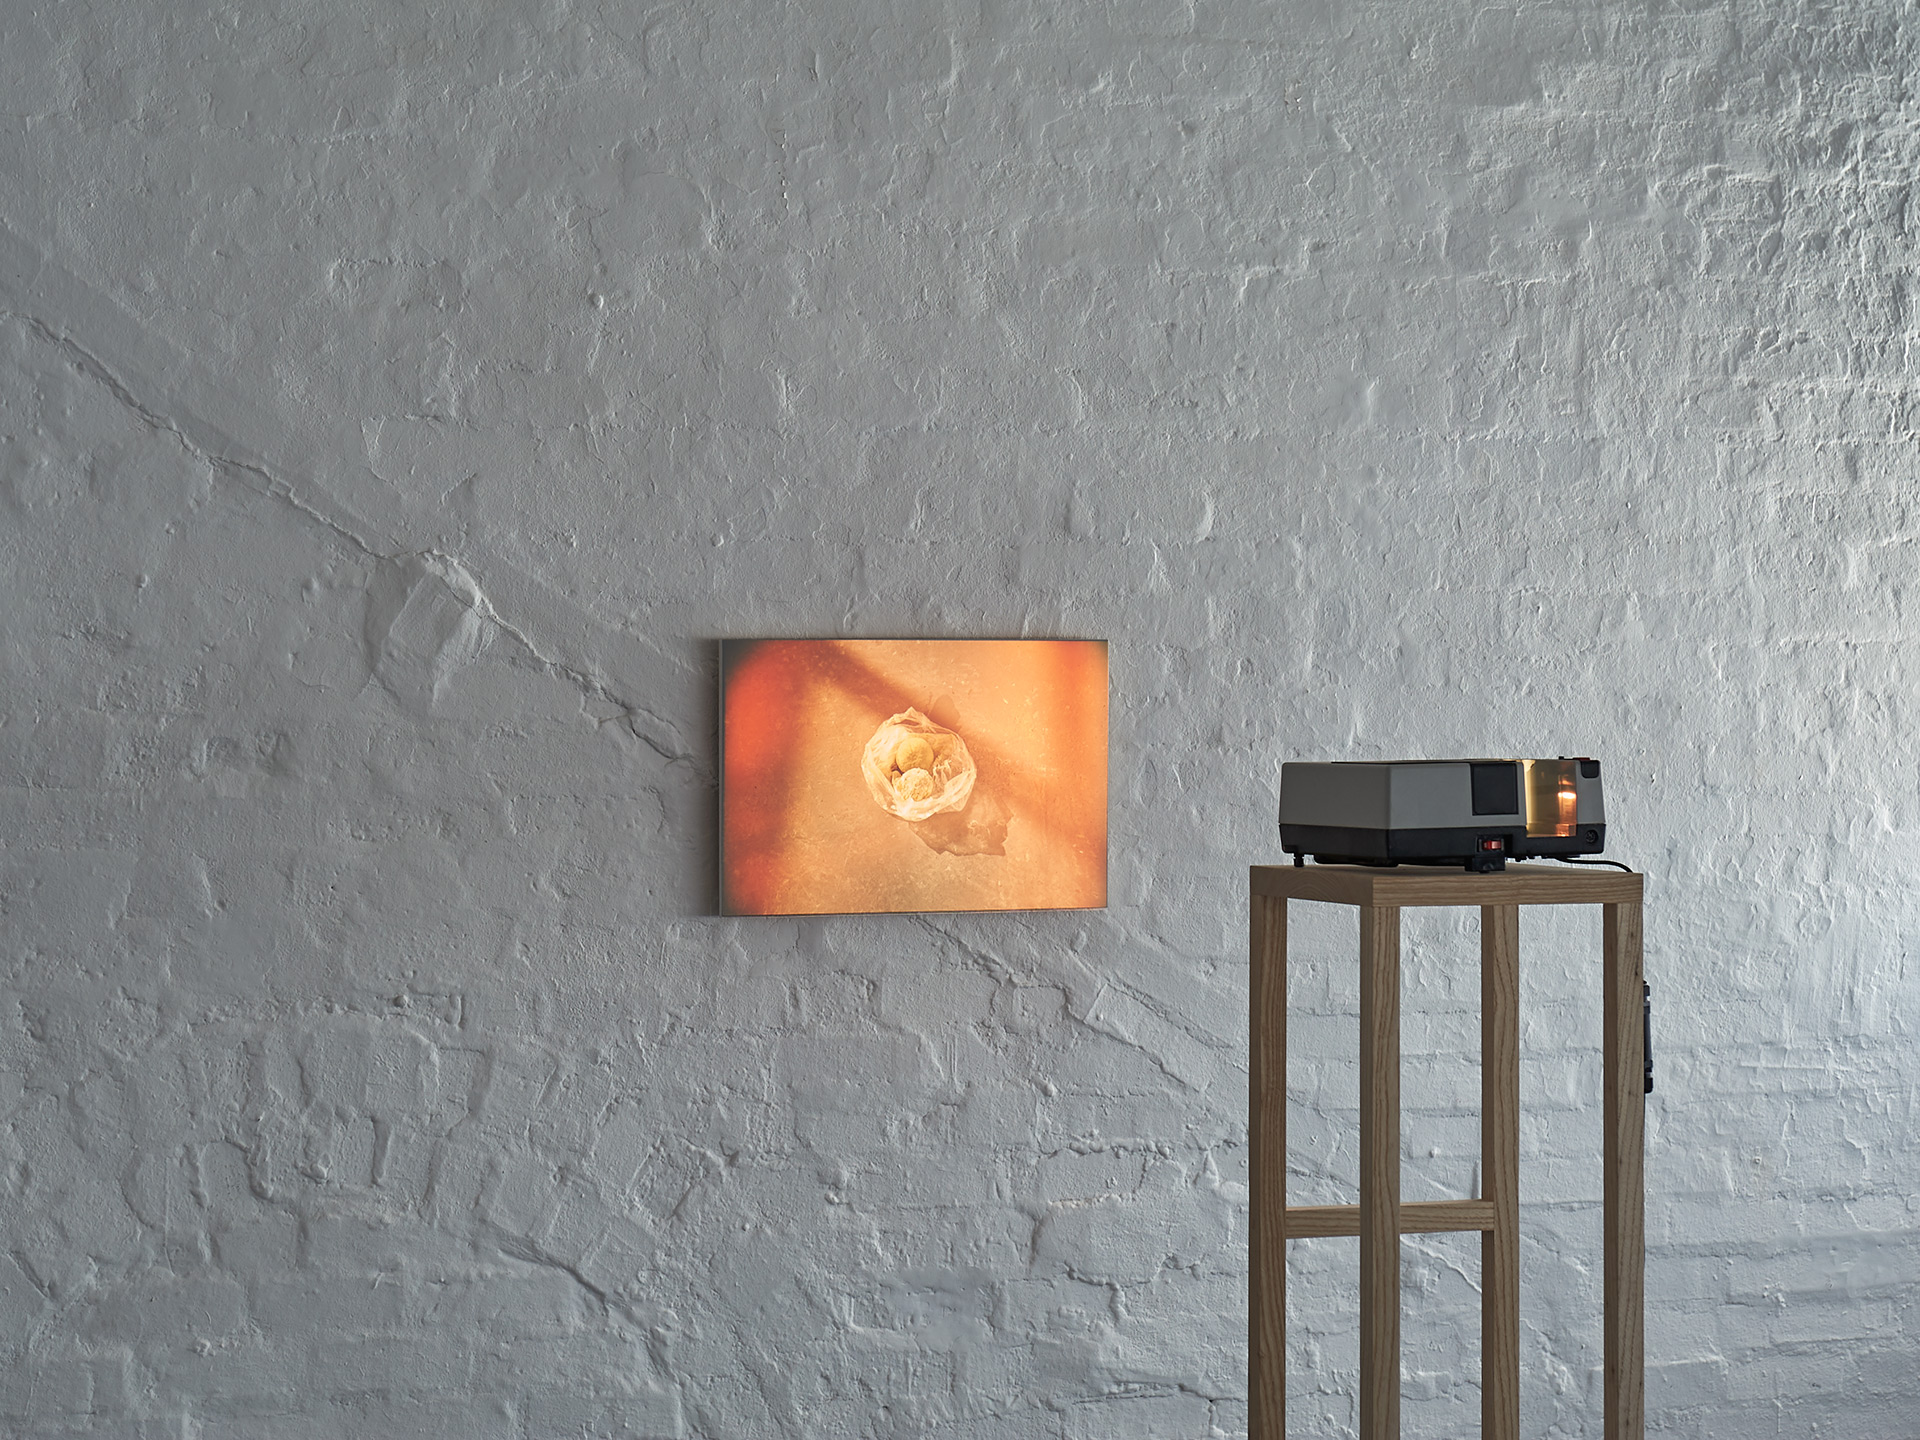 A slide projector sits on a custom made wooden plinth. It projects a single image of some soft fruit in a bag. The image is sepia and orange in tone.